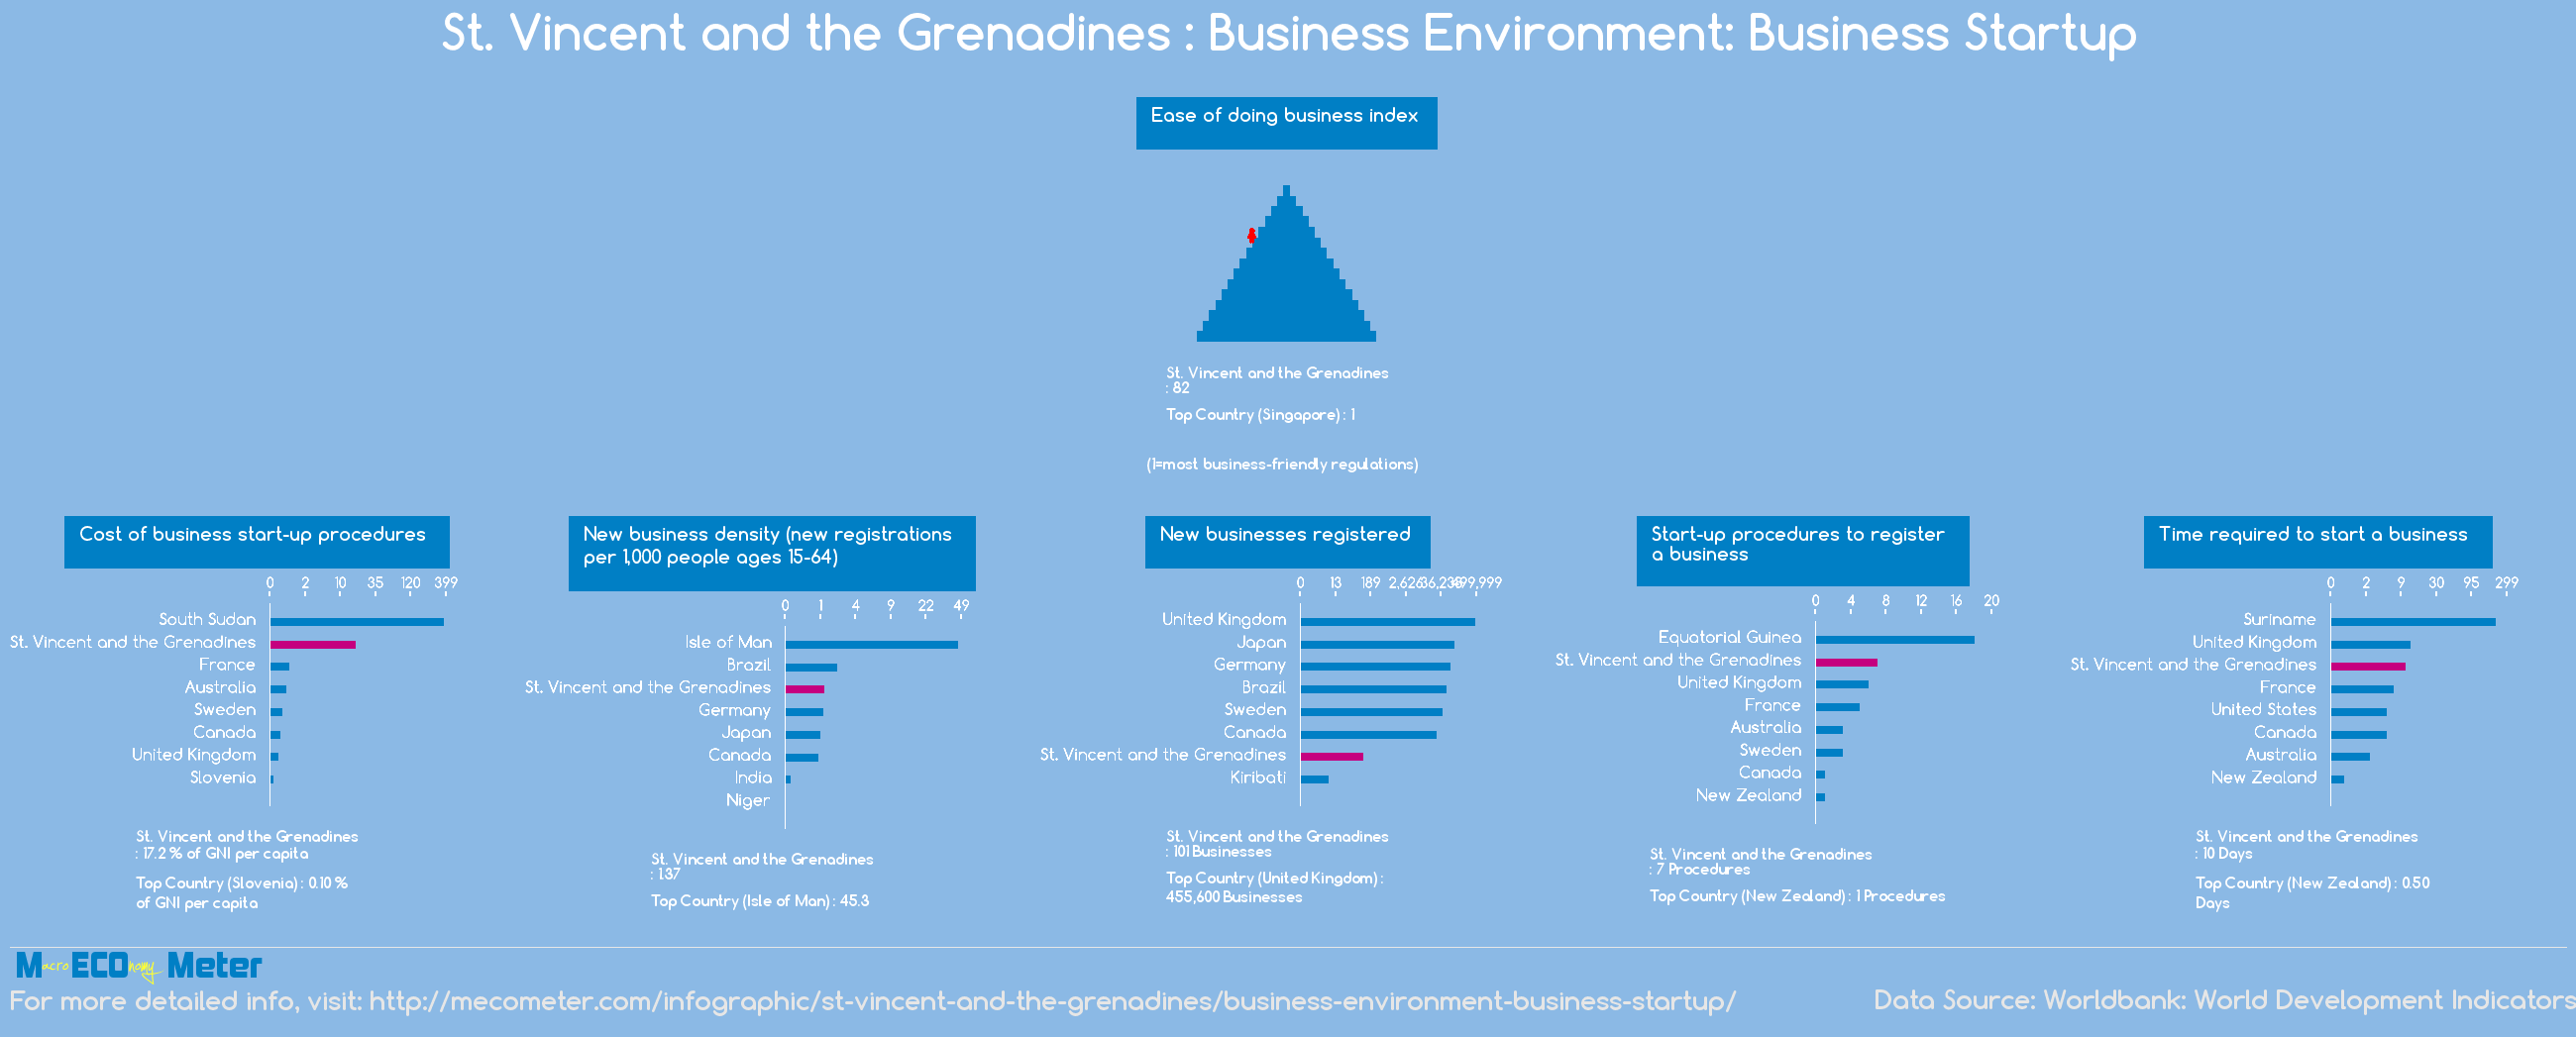 St. Vincent and the Grenadines : Business Environment: Business Startup